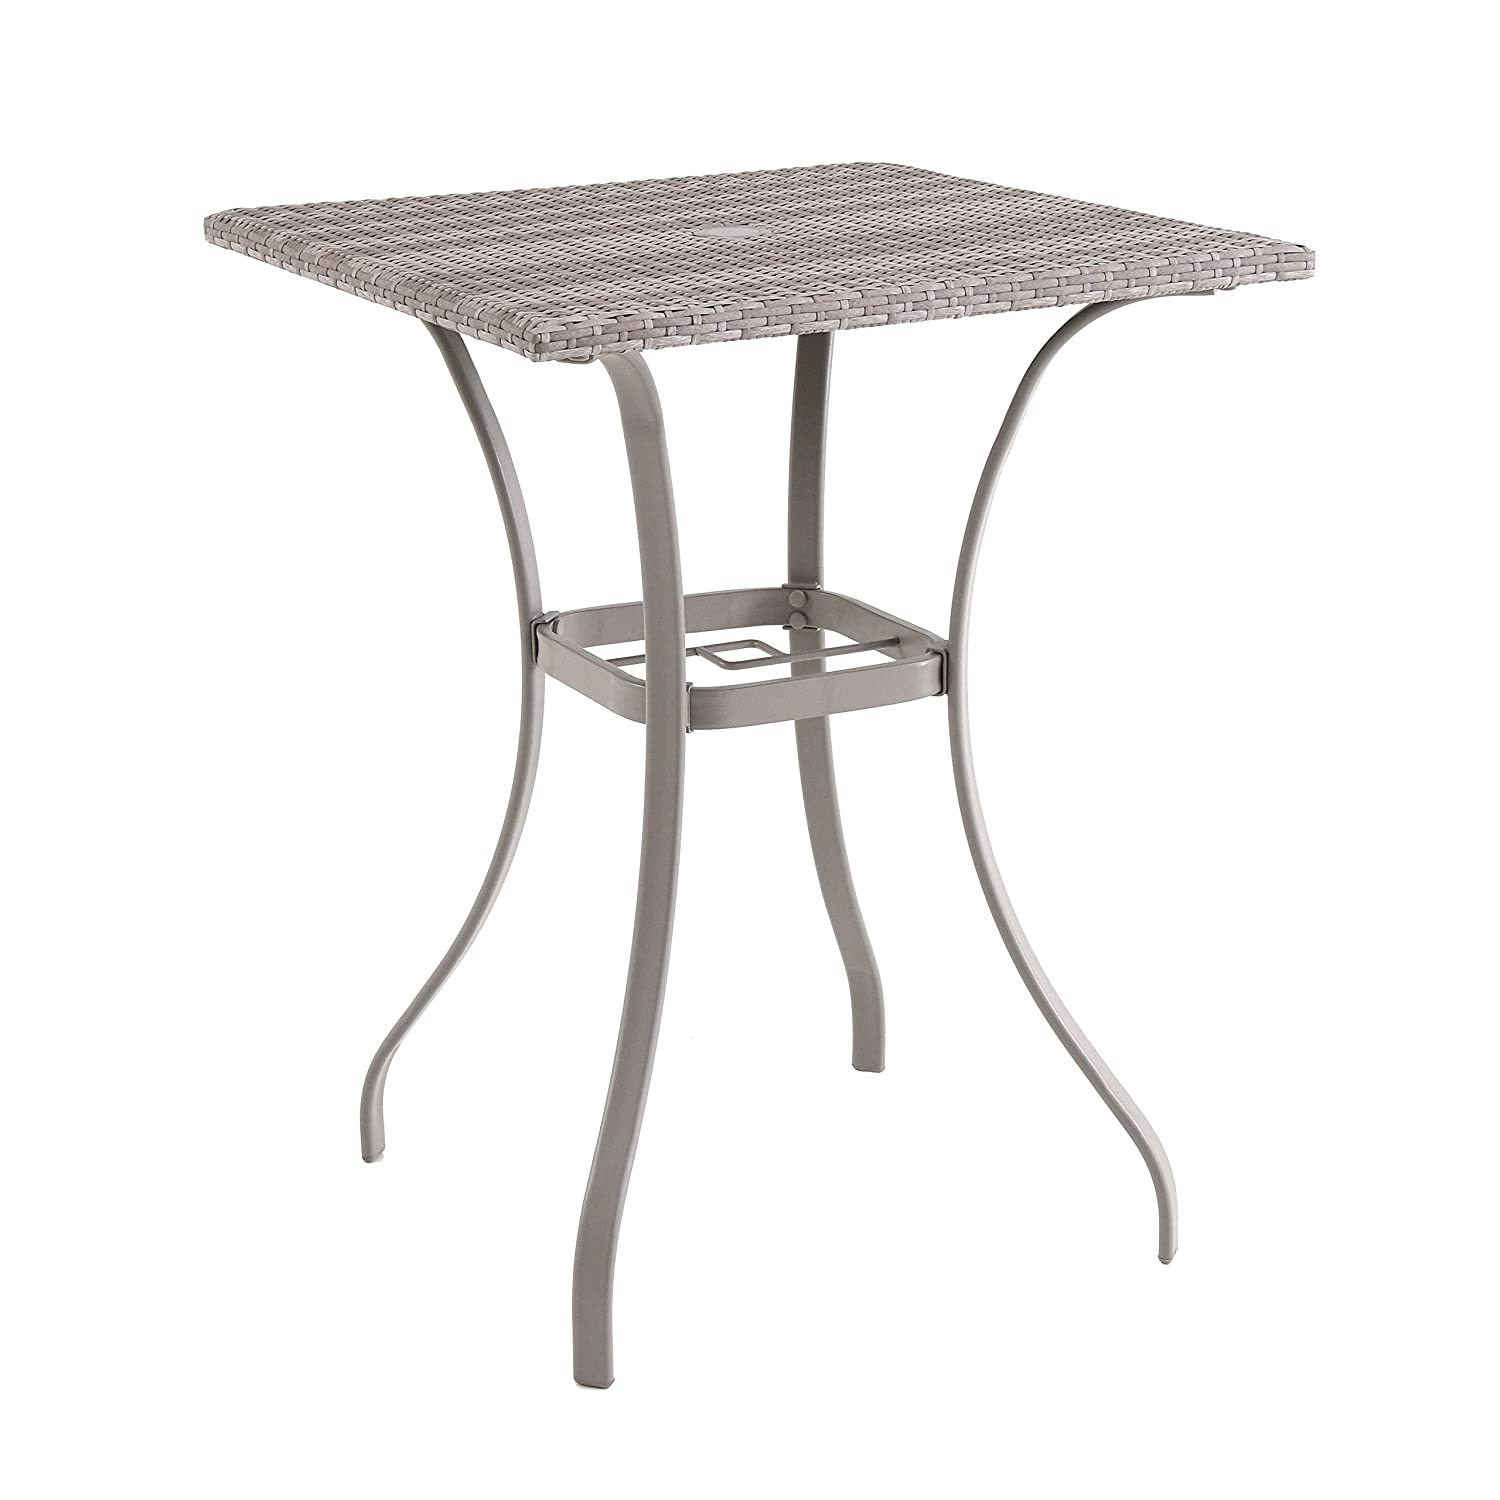 Royal garden gray wicker patio balcony table with umbrella hole high bistro balcony table for apartment balconies and patios steel frame dining table